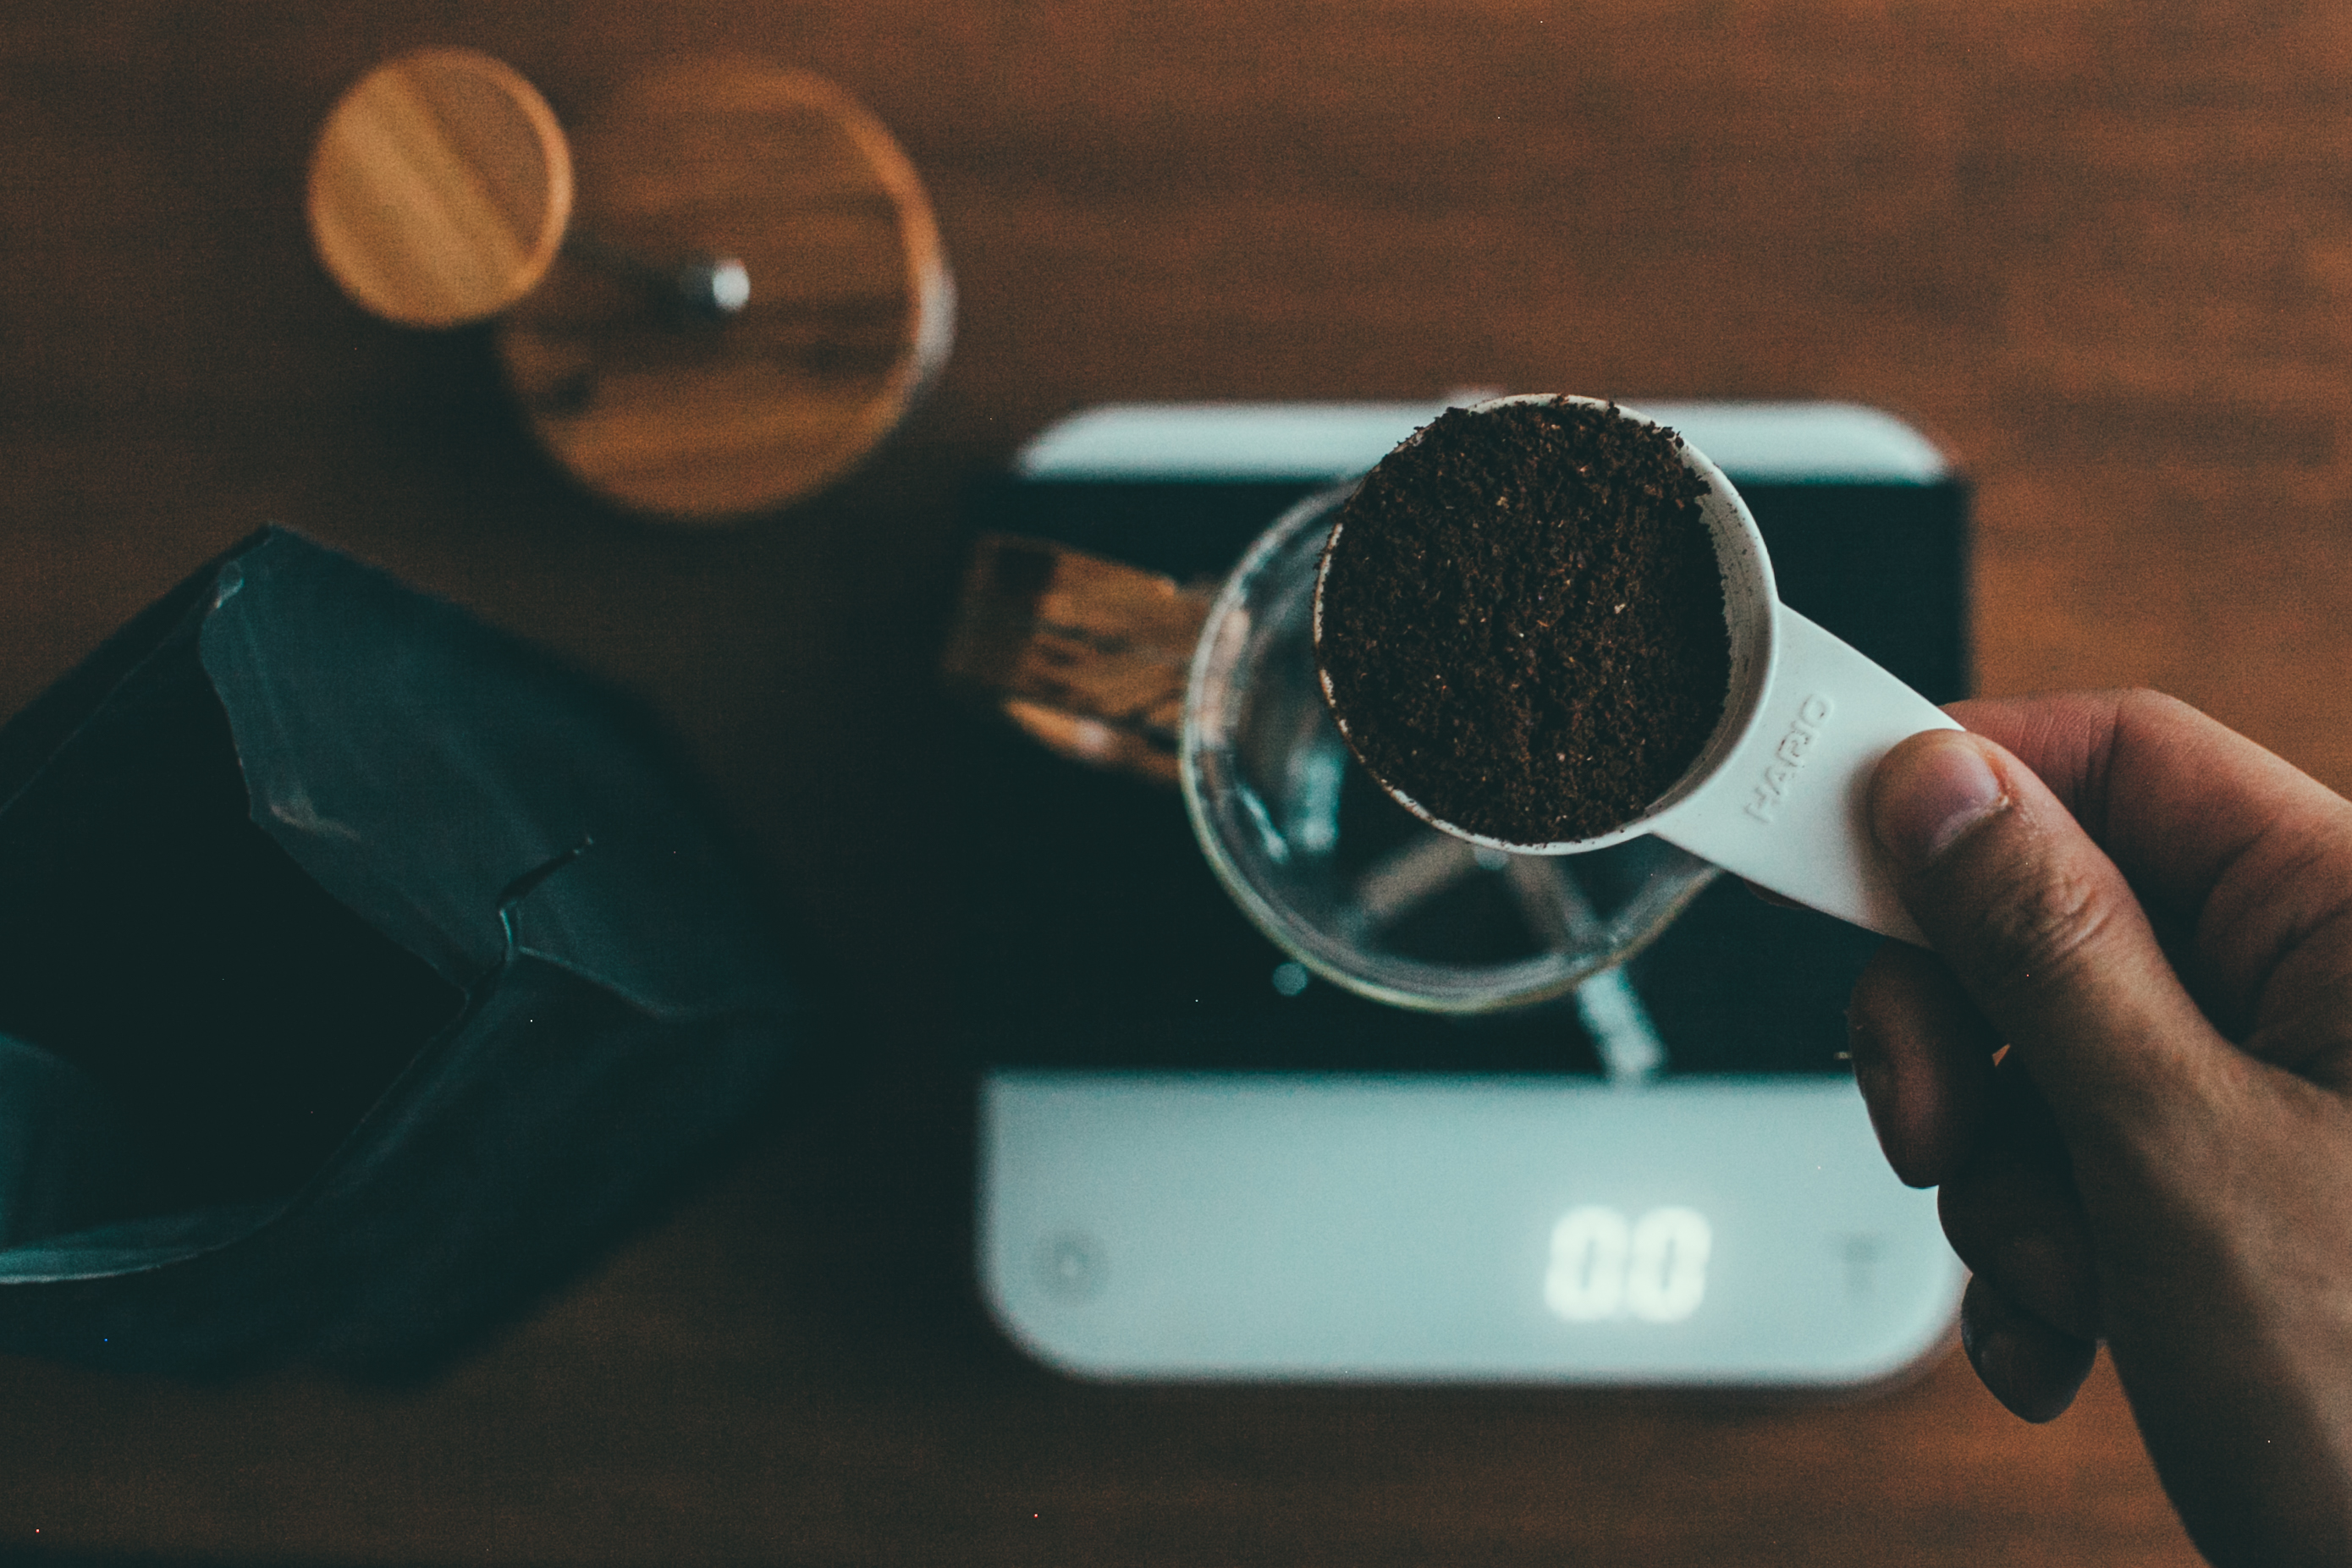 Brewing with a french press and Acaia scale